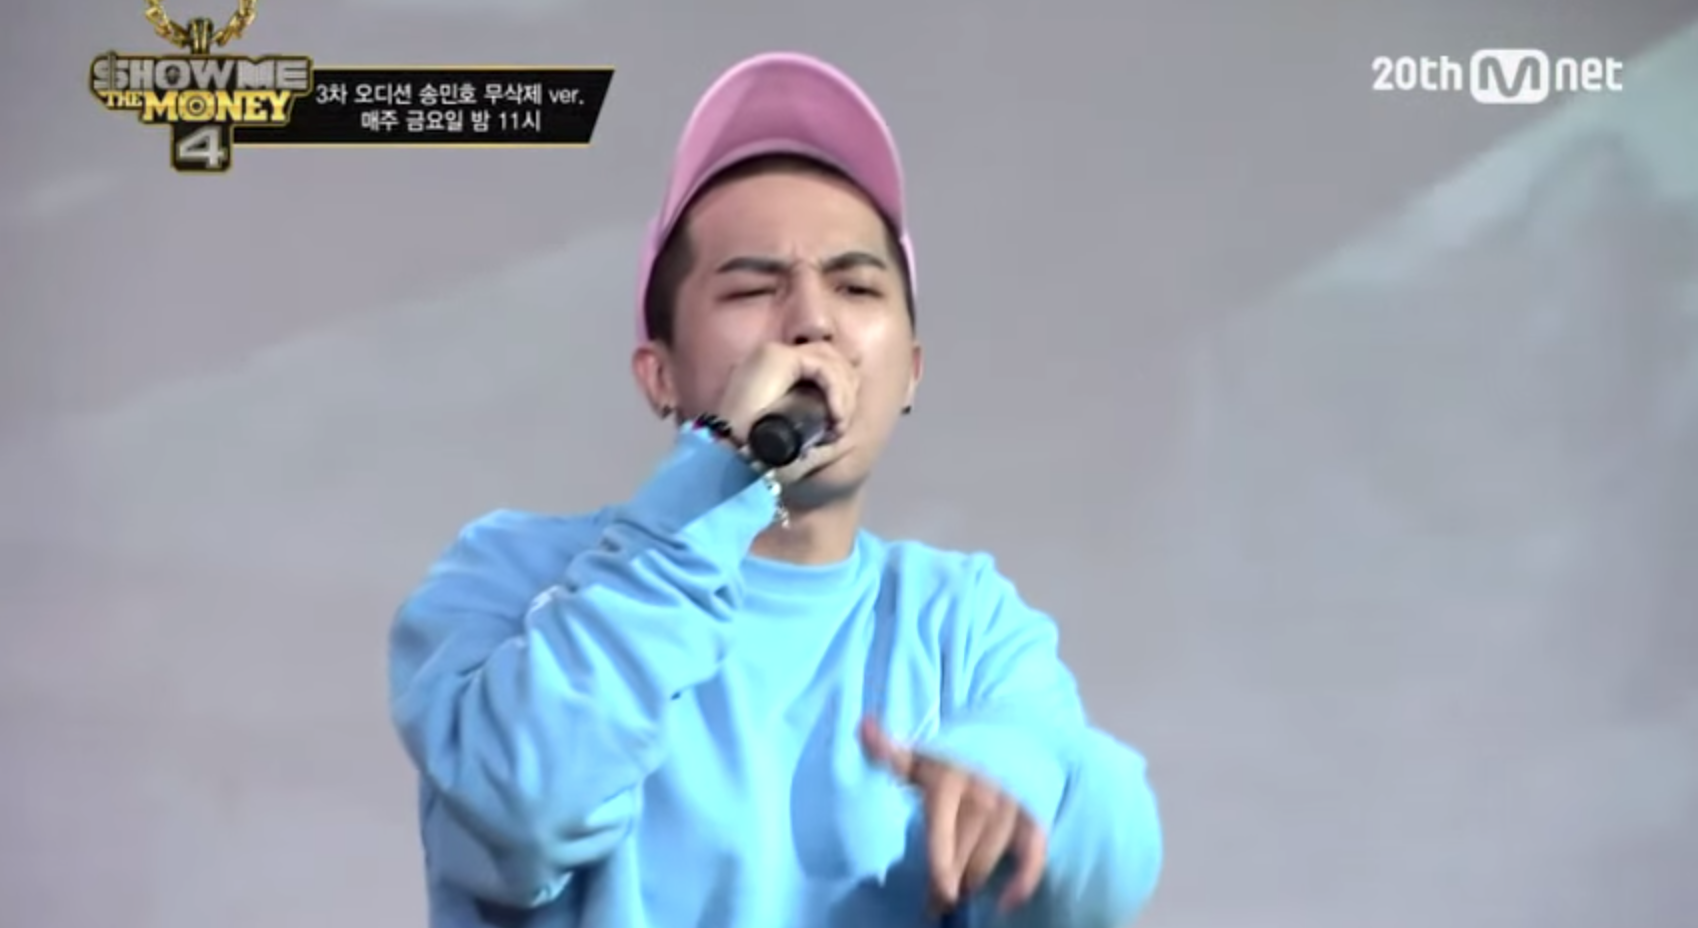 winner song mino show me the money 4 controversial rap